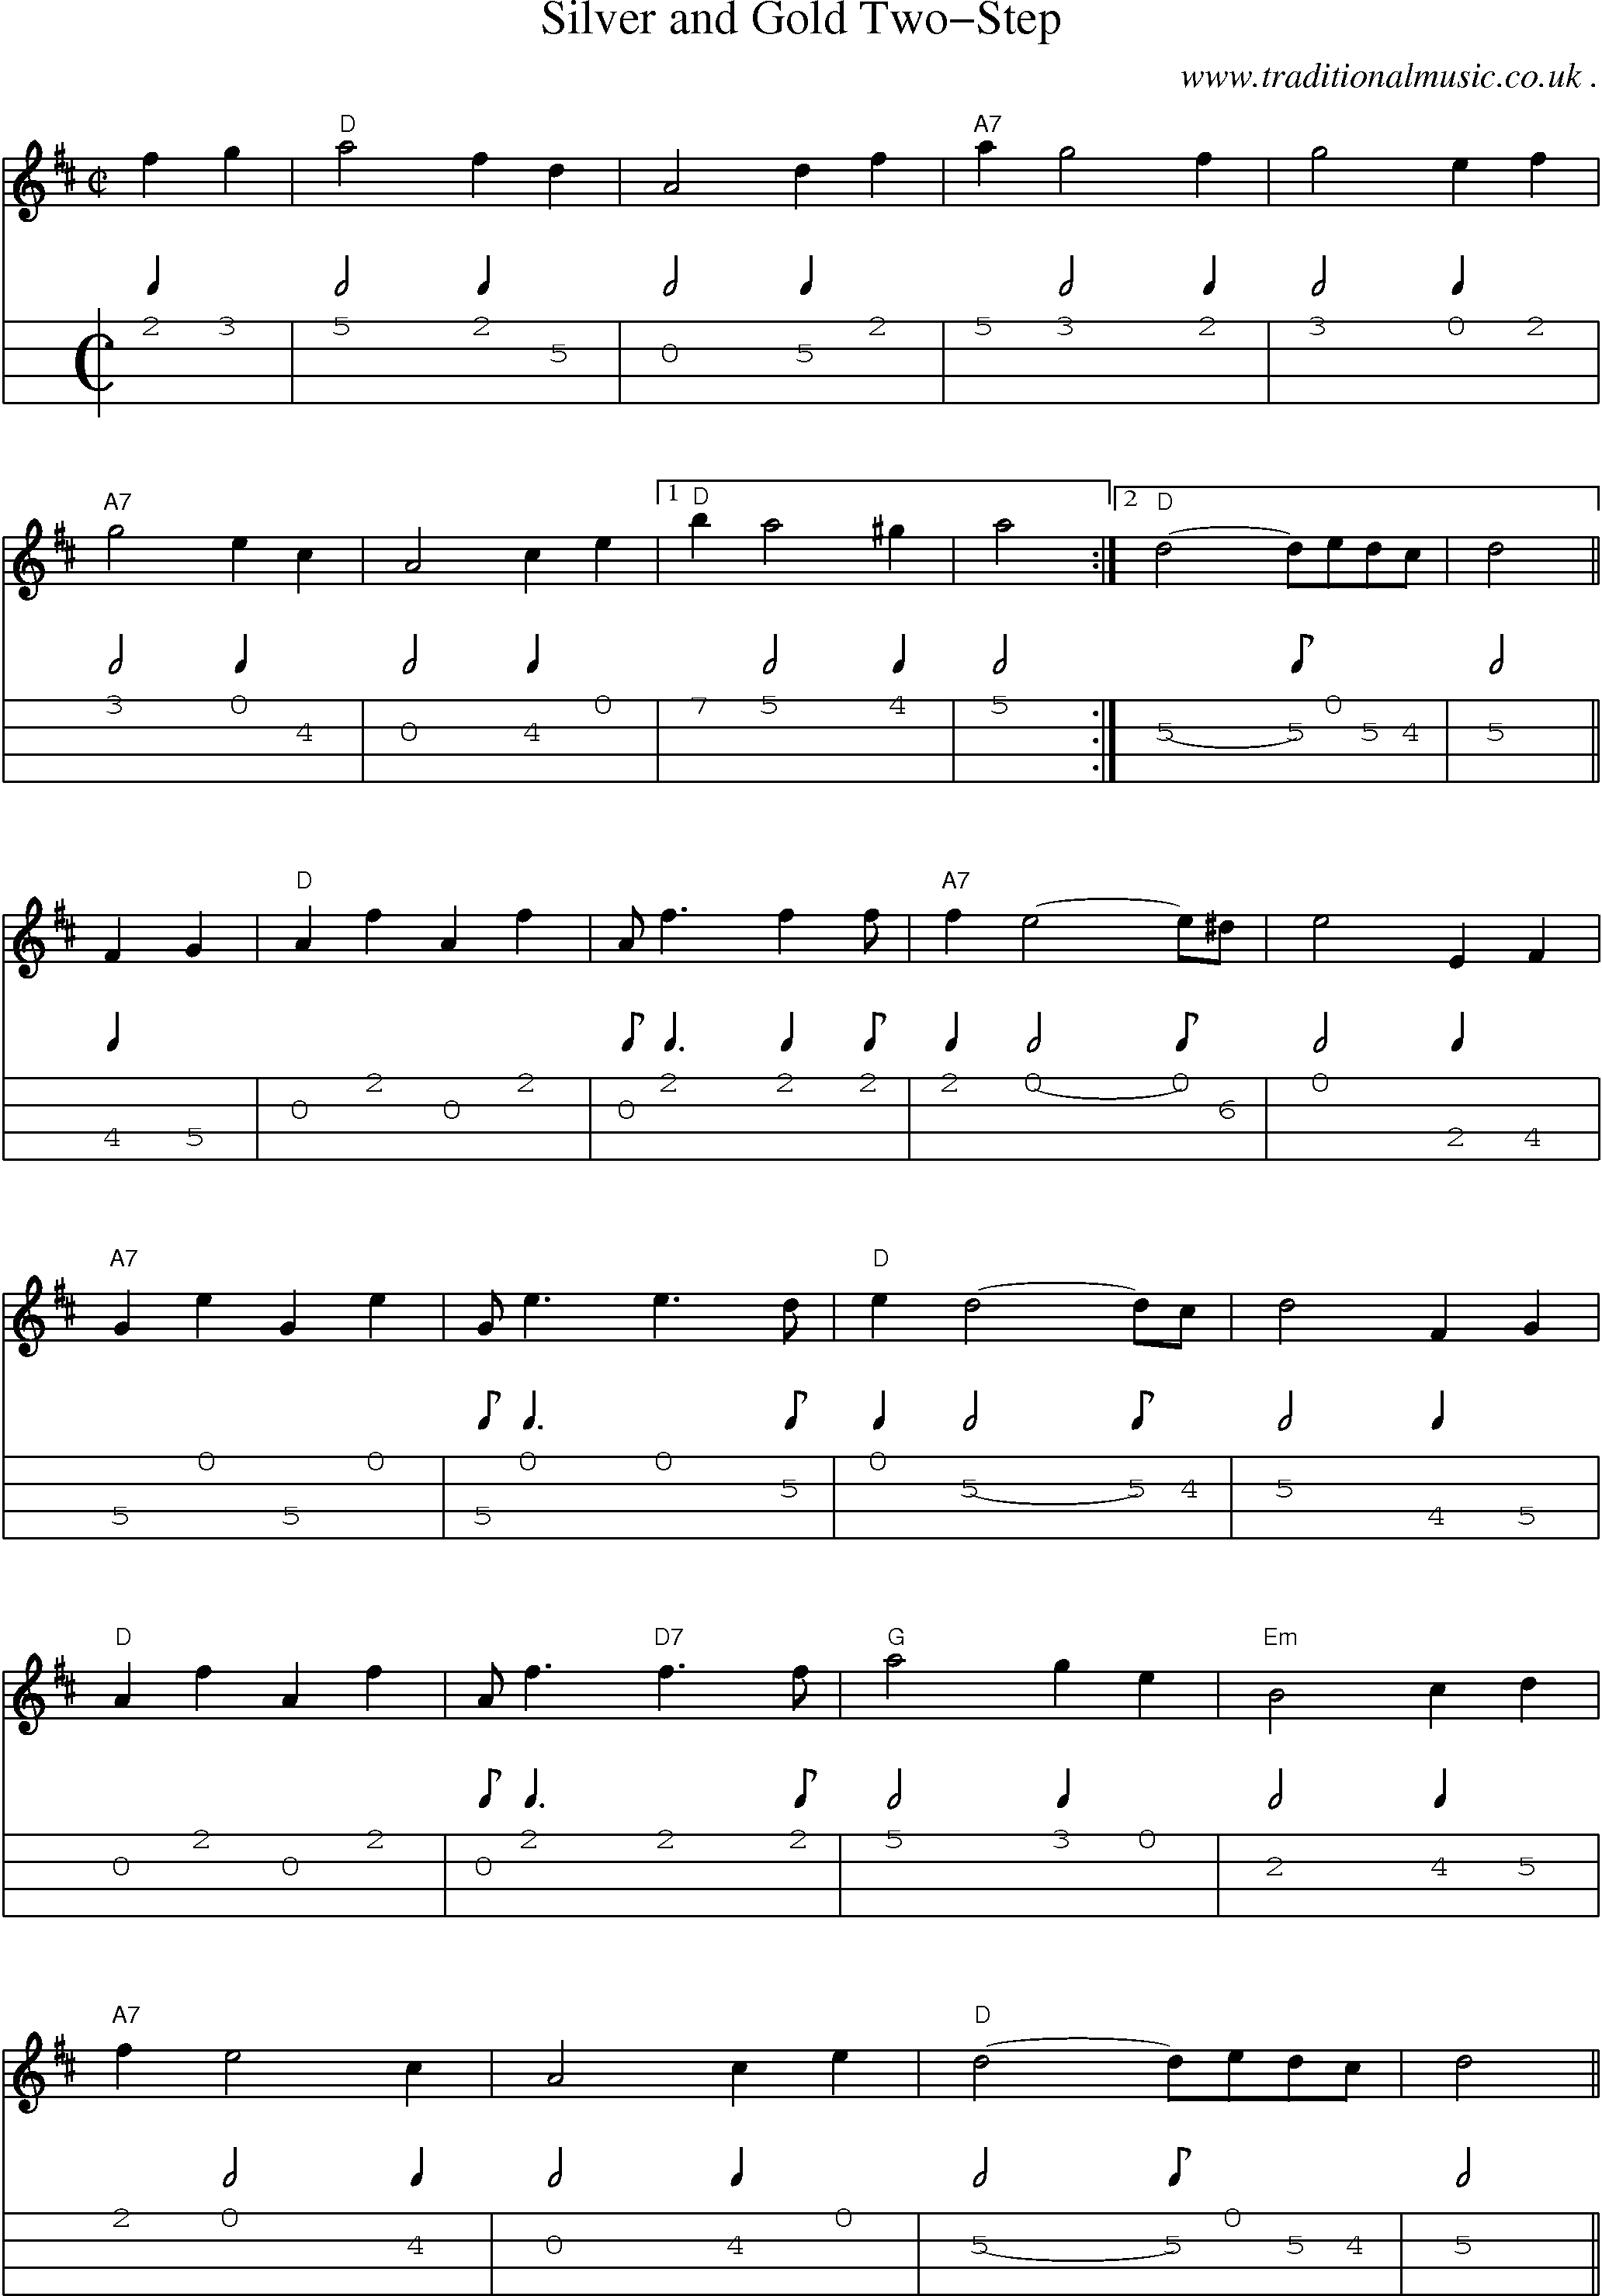 American Old Time Music Scores And Tabs For Mandolin Silver And